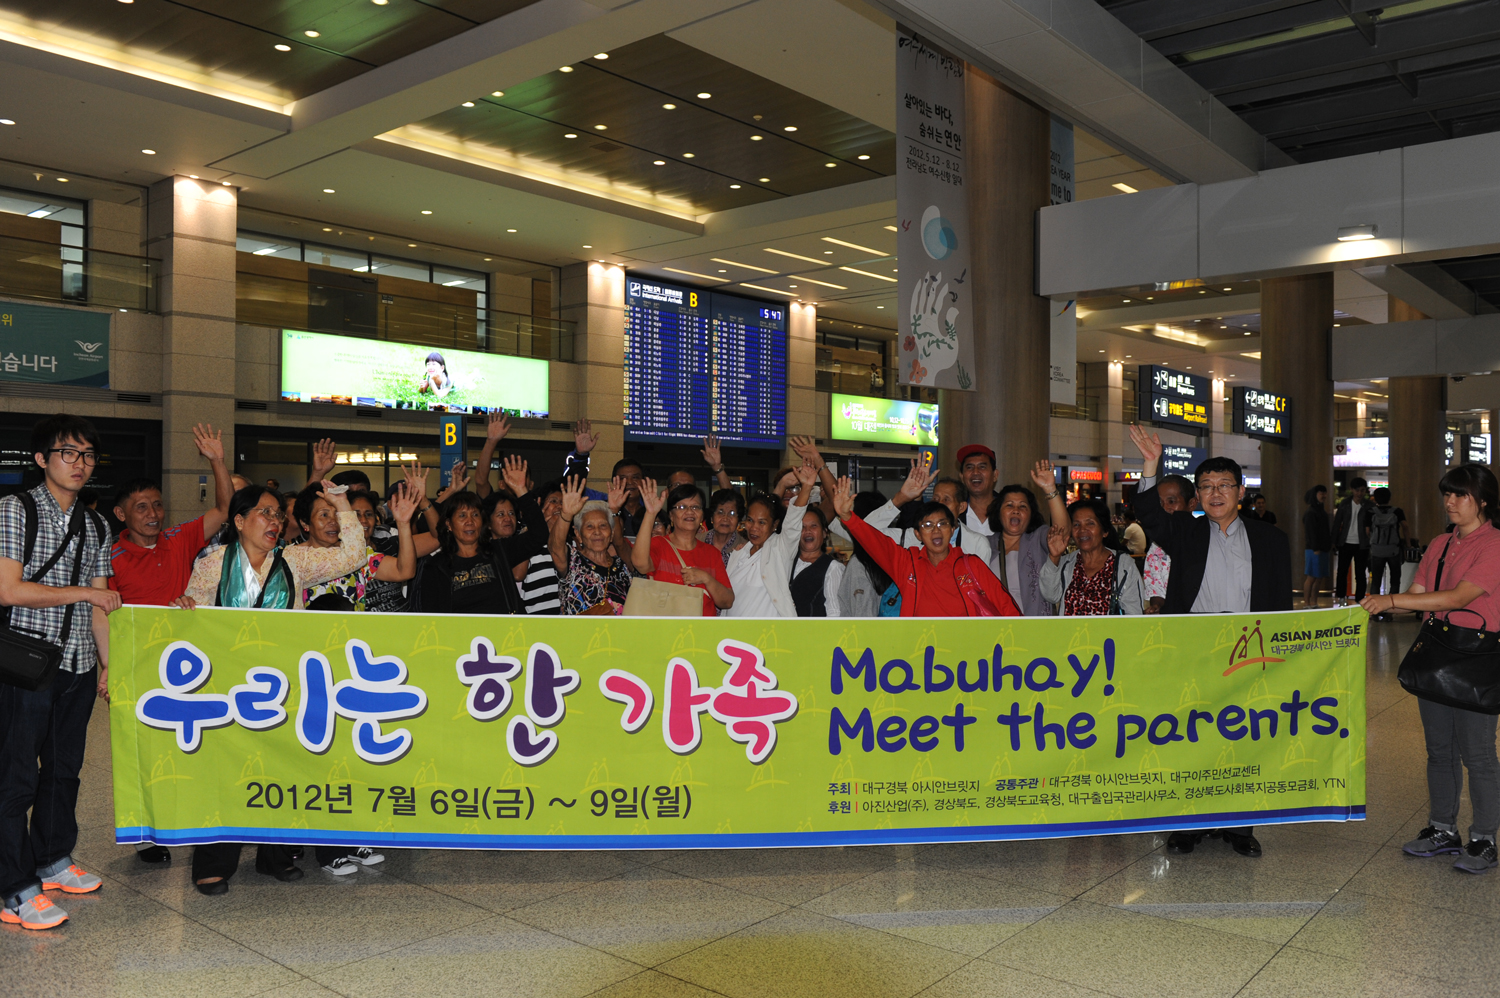 Meet the Parents Welcome Banner, Seoul, South Korea (Photo by Rochit Tañedo)